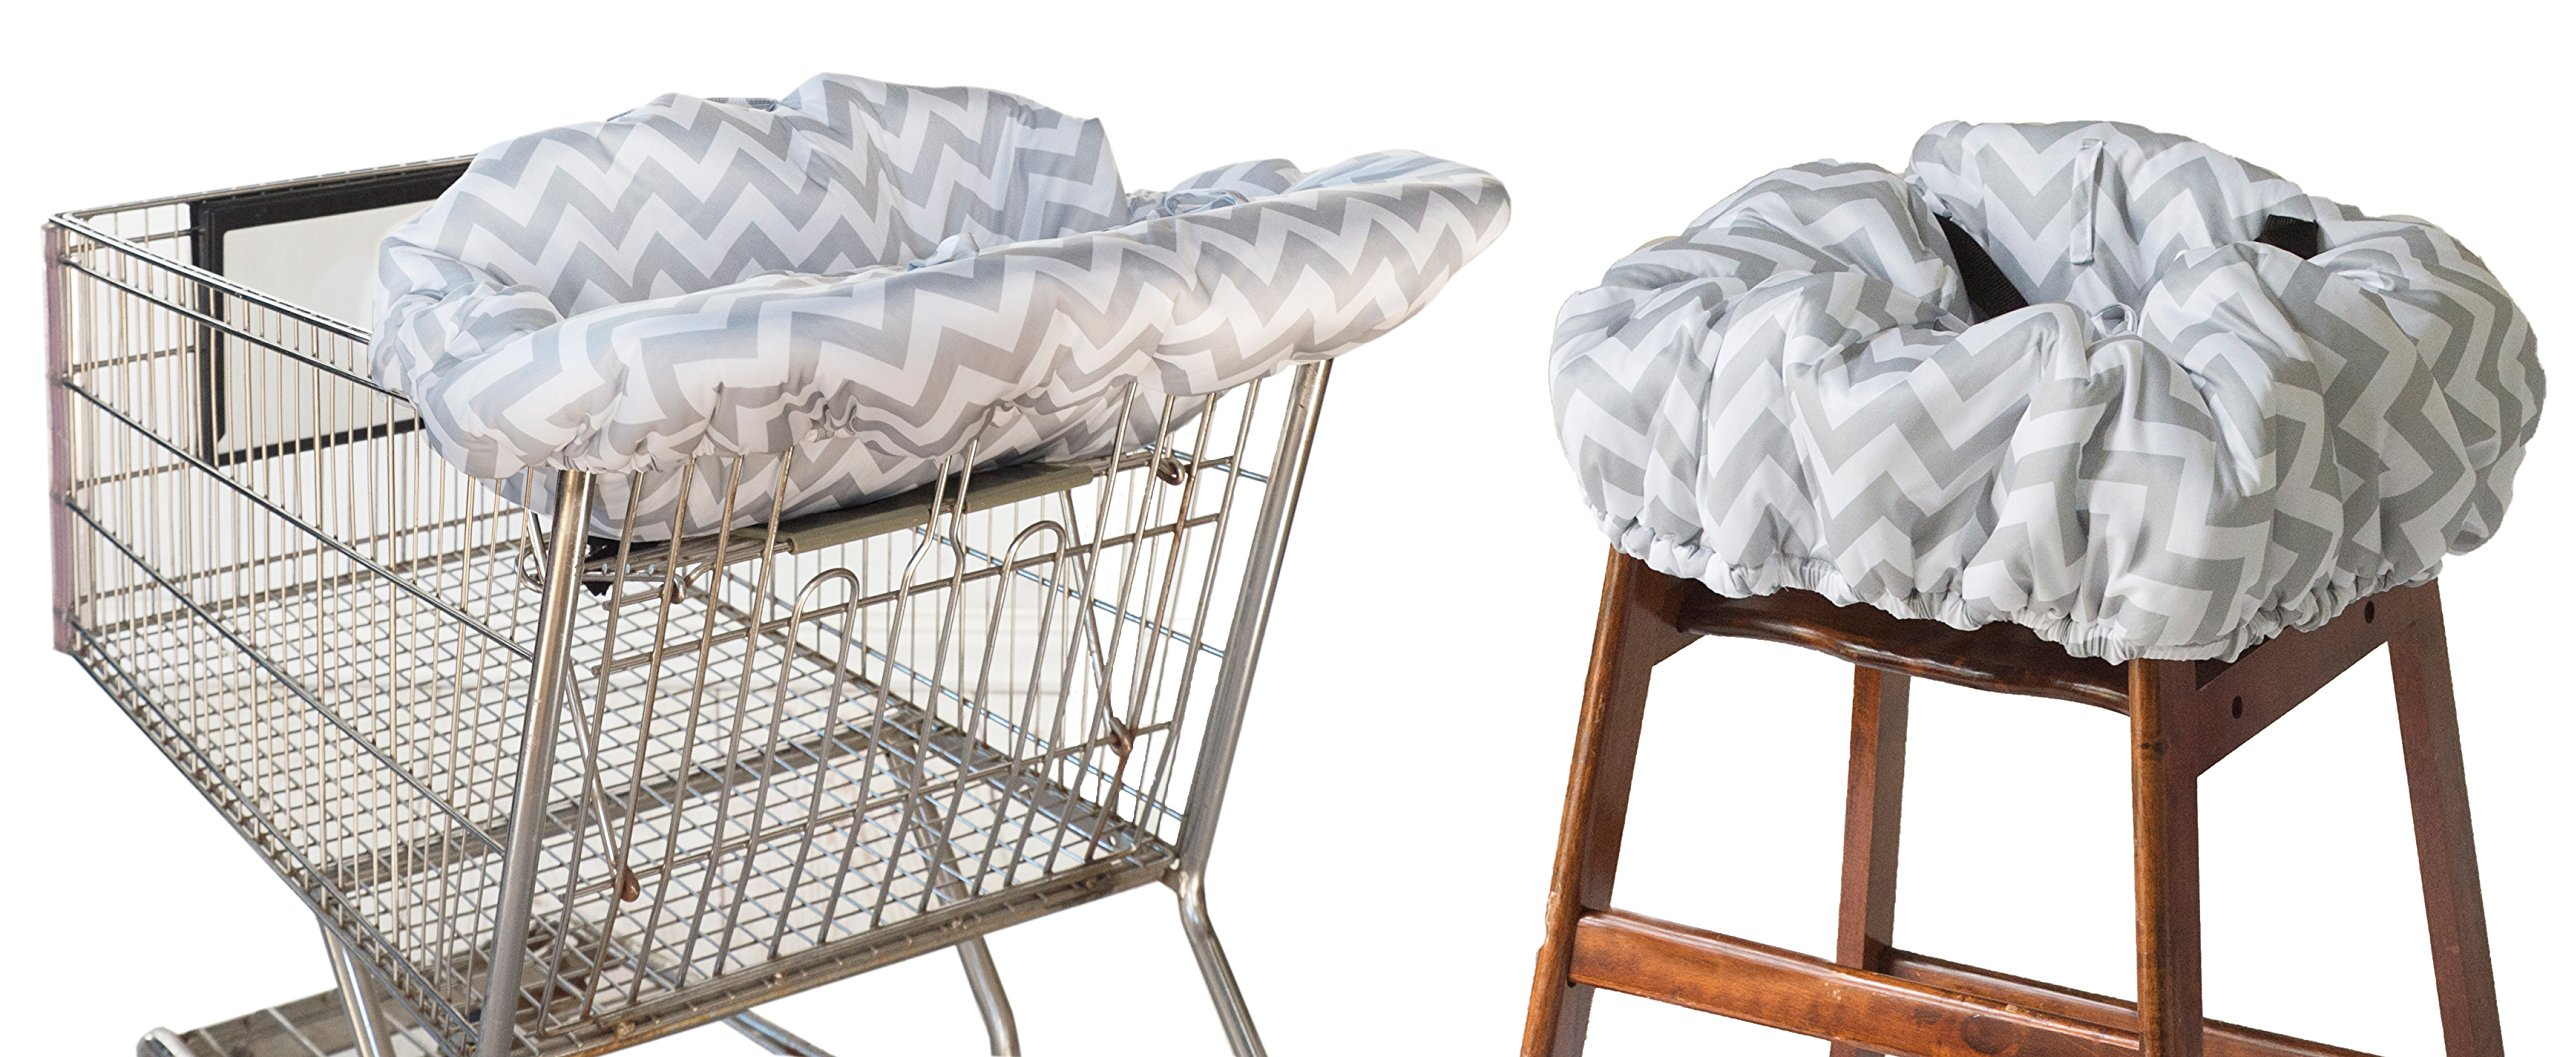 Itzy Ritzy Ritzy Sitzy Shopping Cart & High Chair Cover (C. Grey Chevron) by Itzy Ritzy (Image #1)